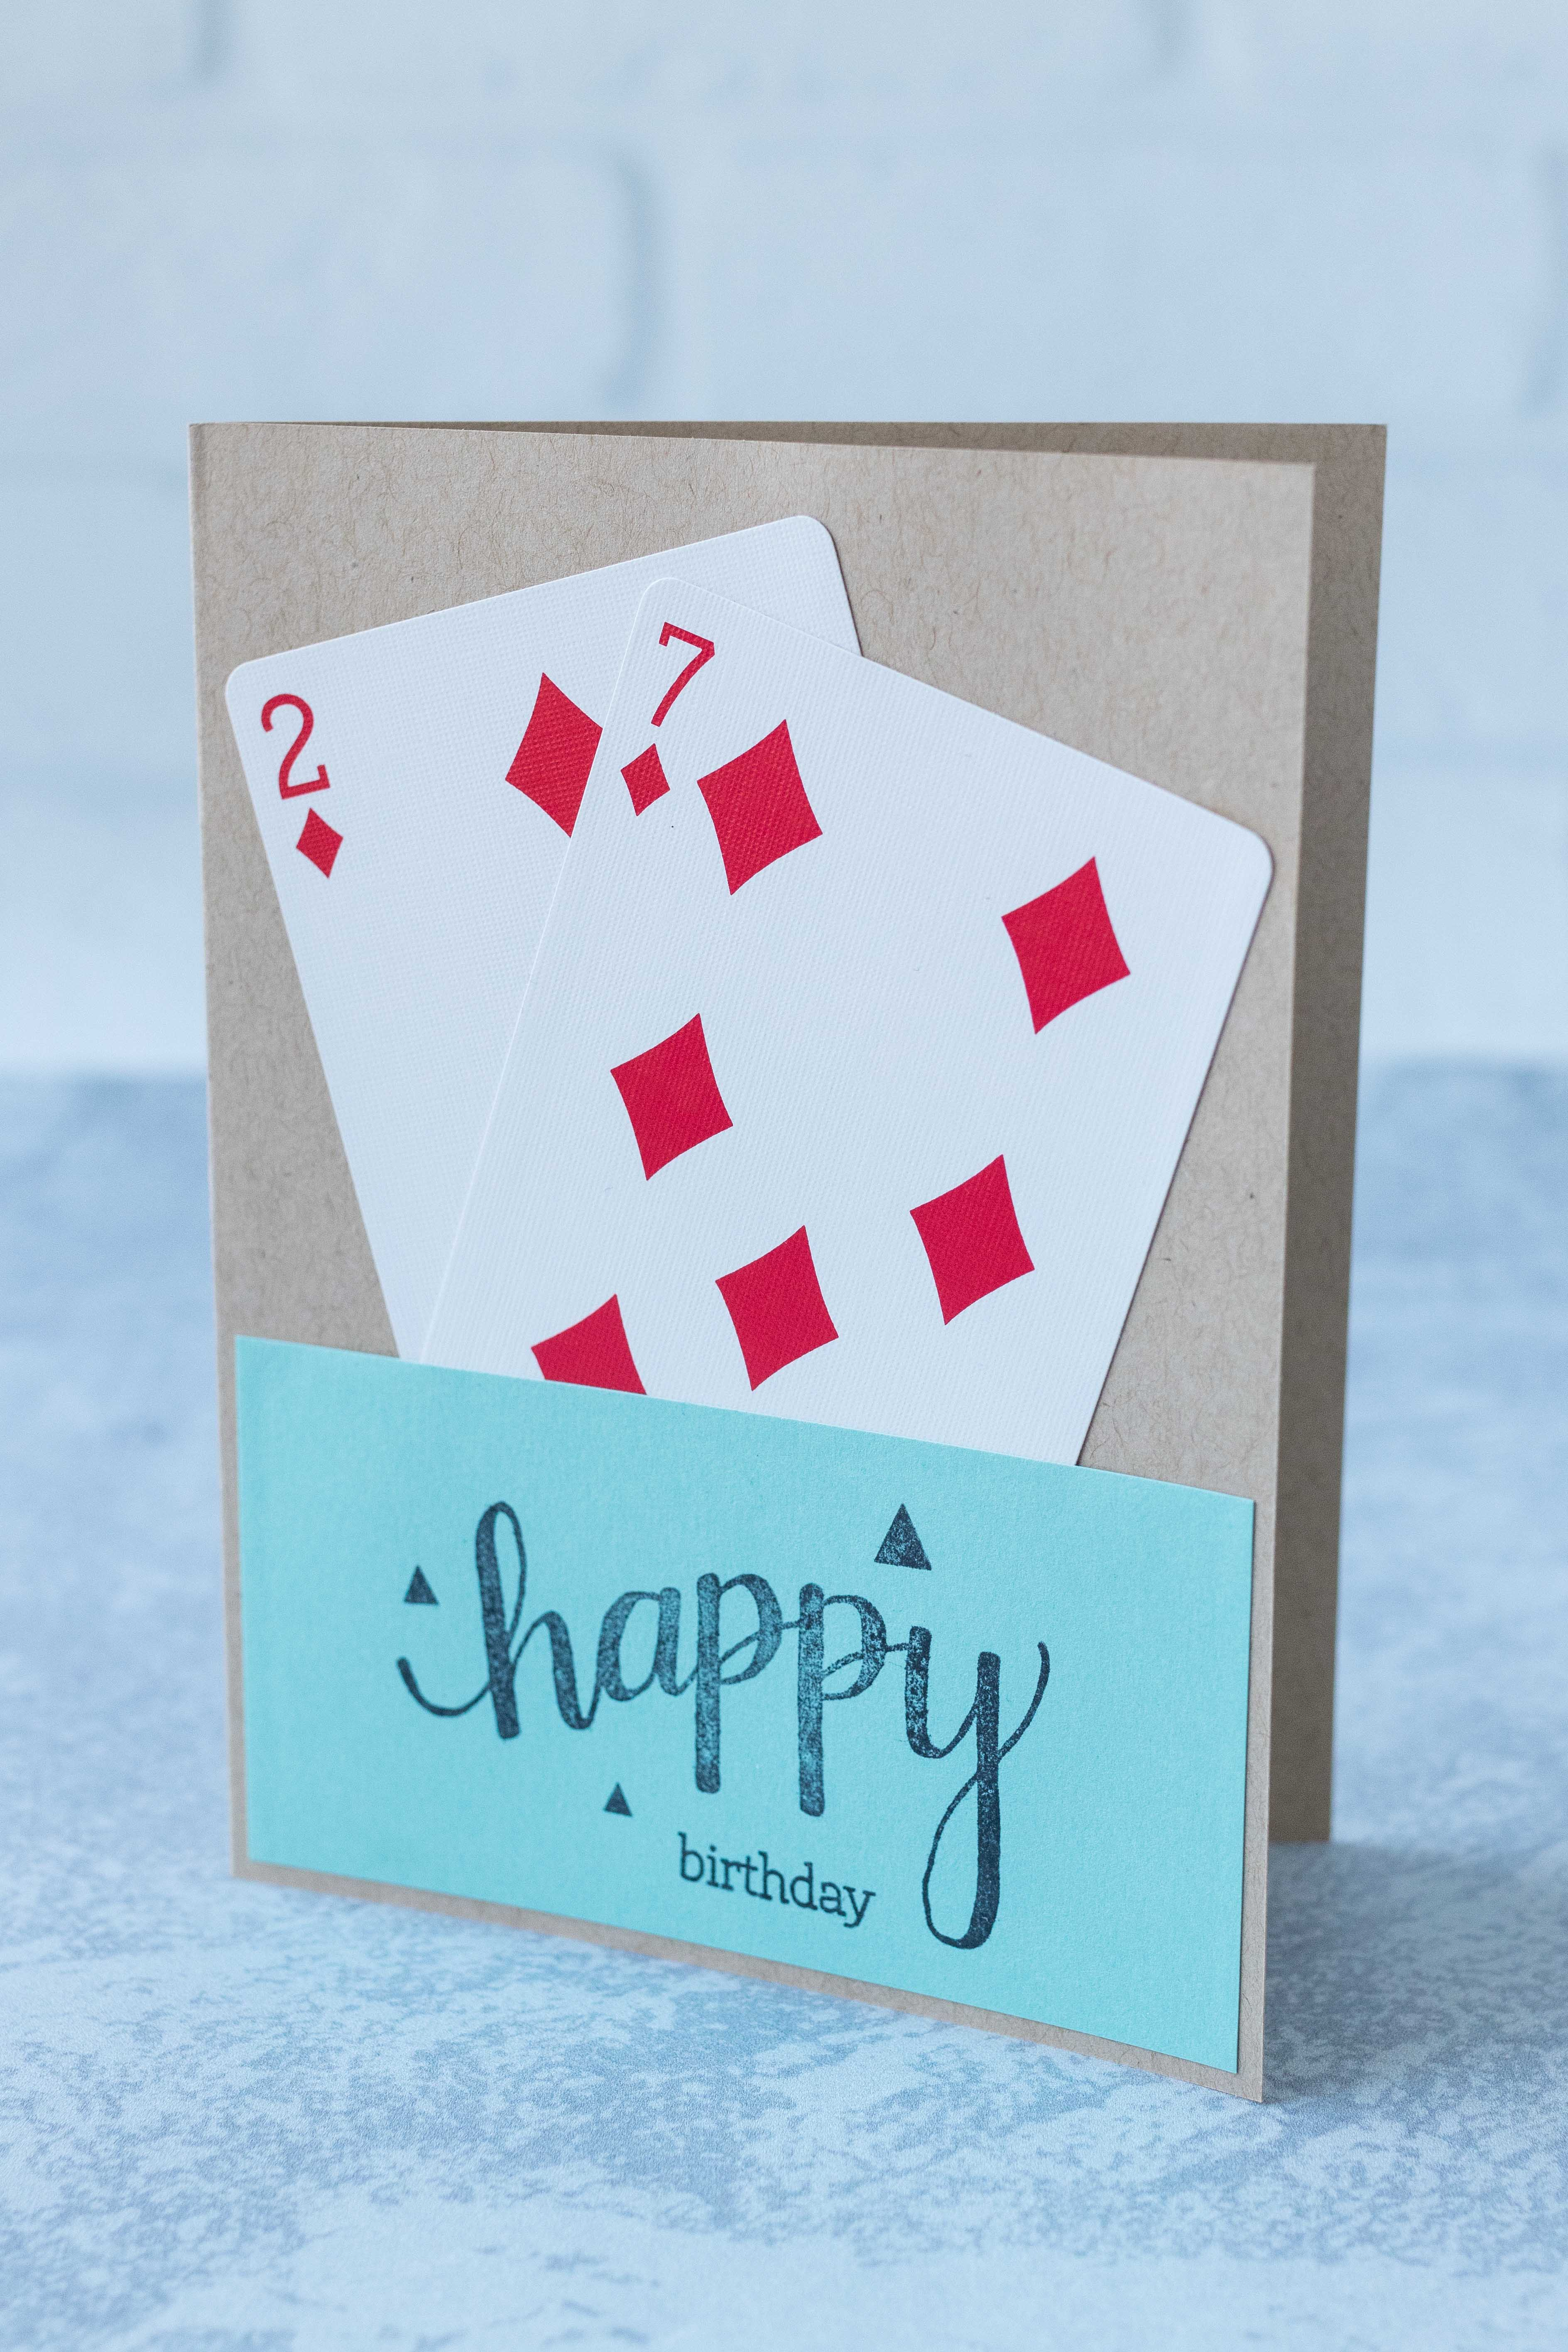 Enjoyable 10 Simple Diy Birthday Cards Rose Clearfield Funny Birthday Cards Online Inifofree Goldxyz